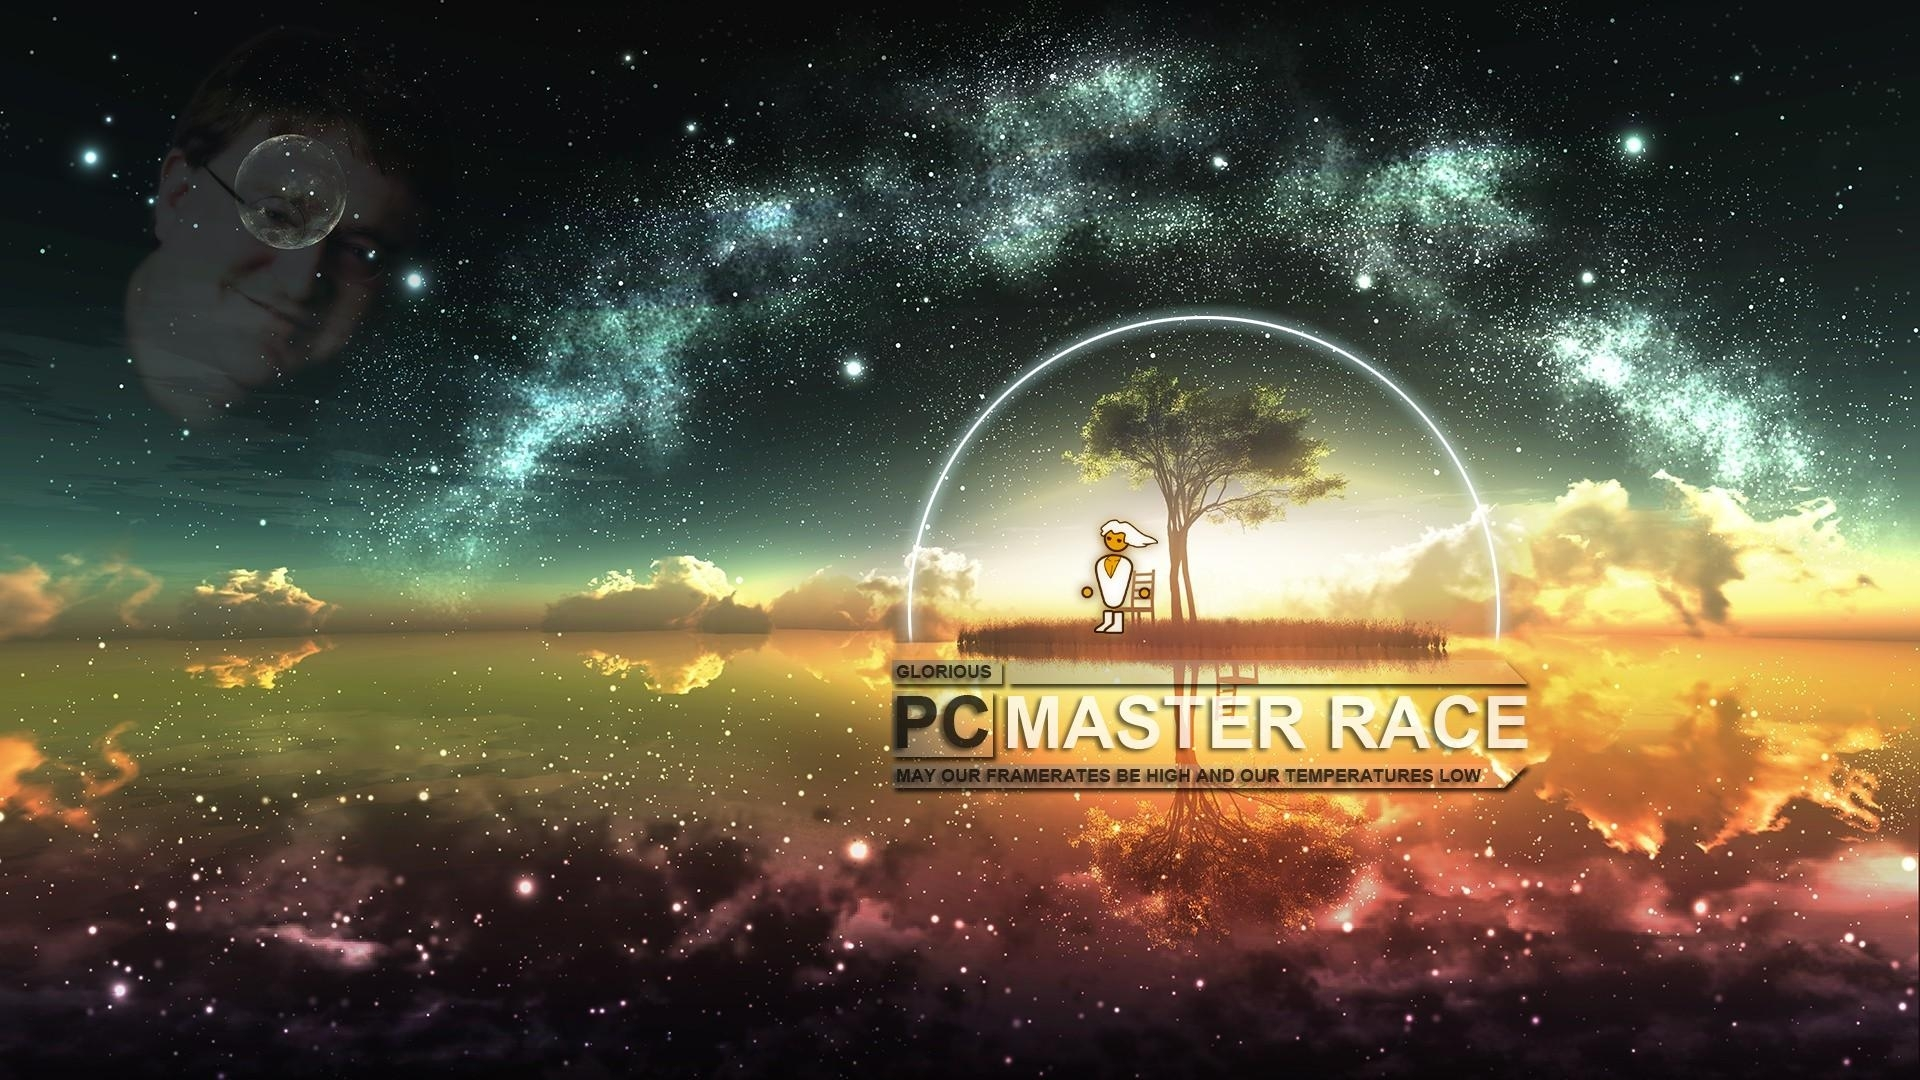 awesome wallpaper, pcmasterrace! : pcmasterrace